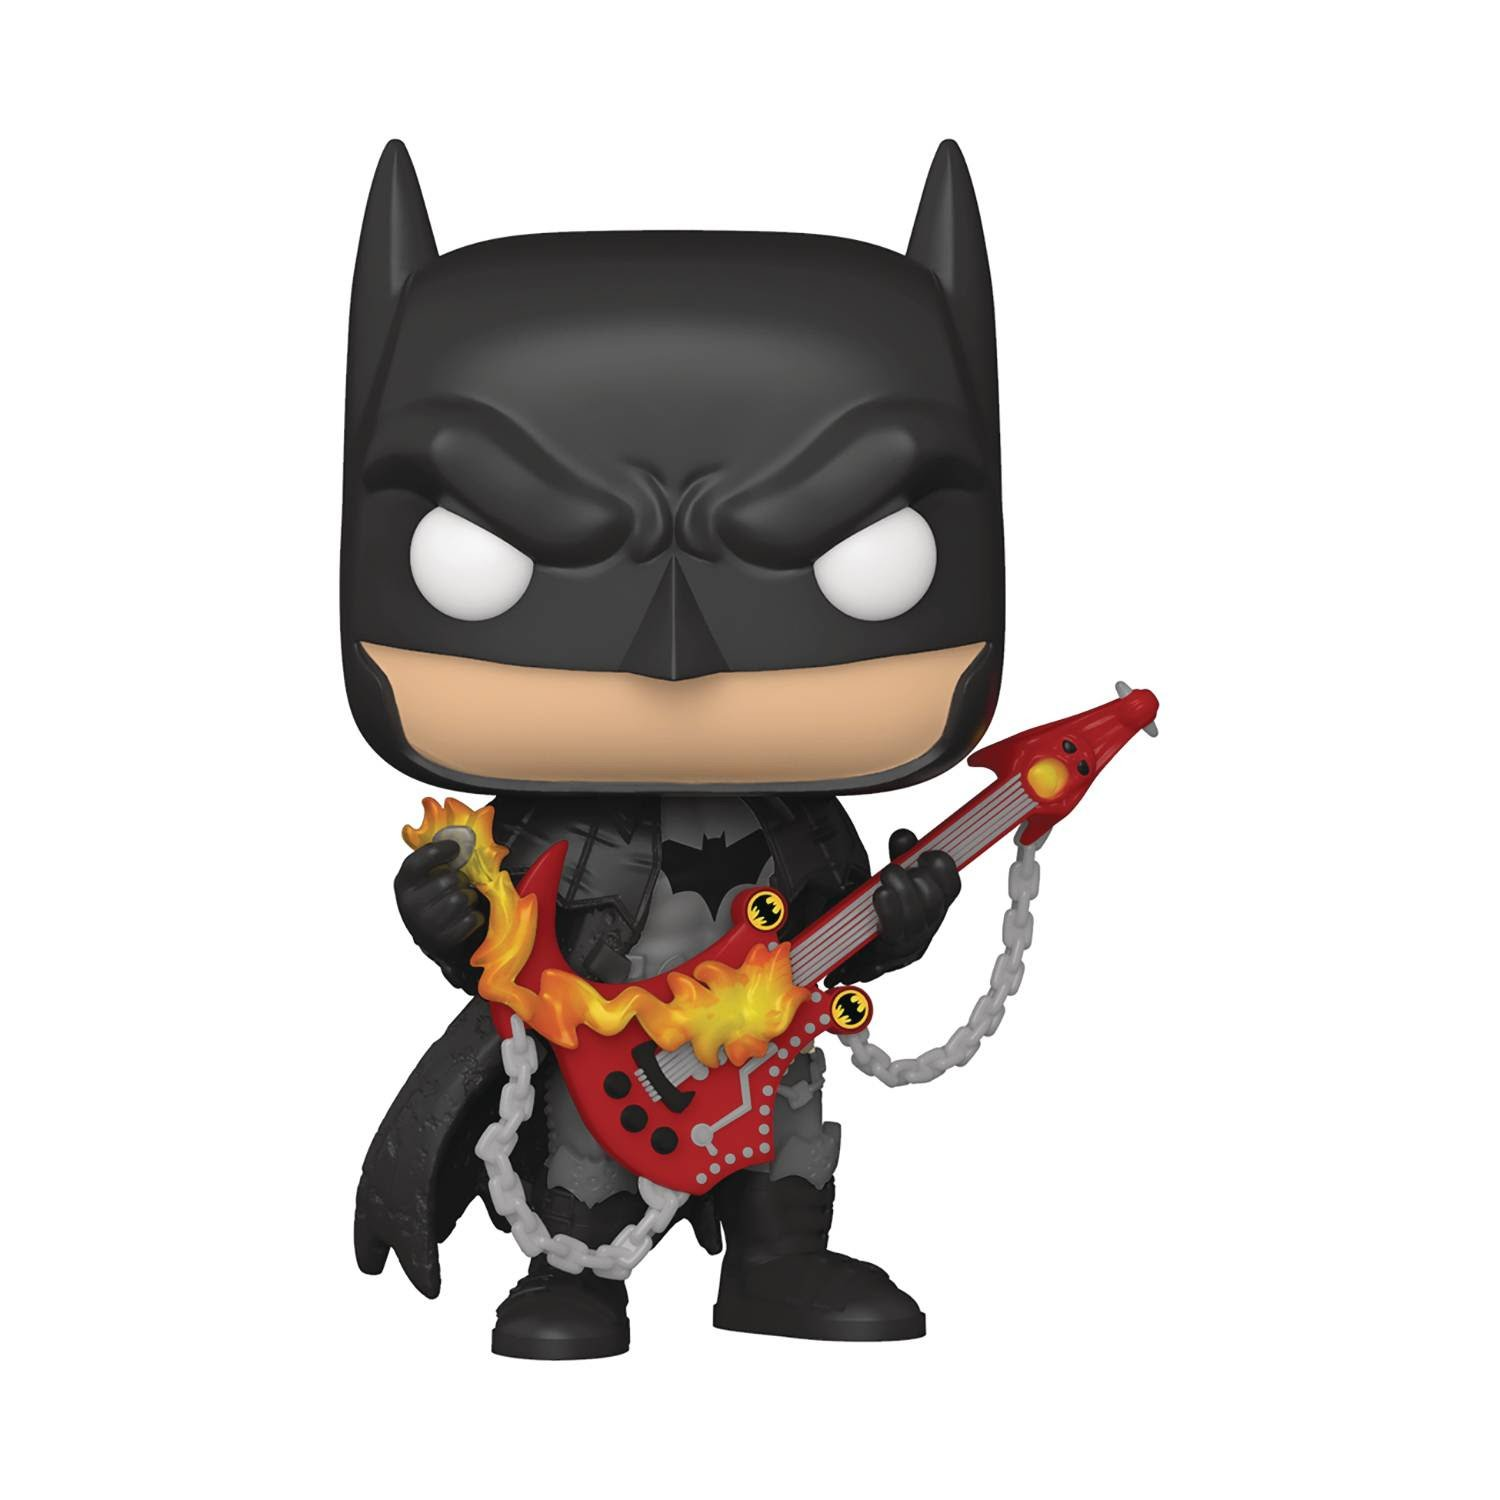 Pops! DC Heroes' Death Metal Batman Figure with Guitar